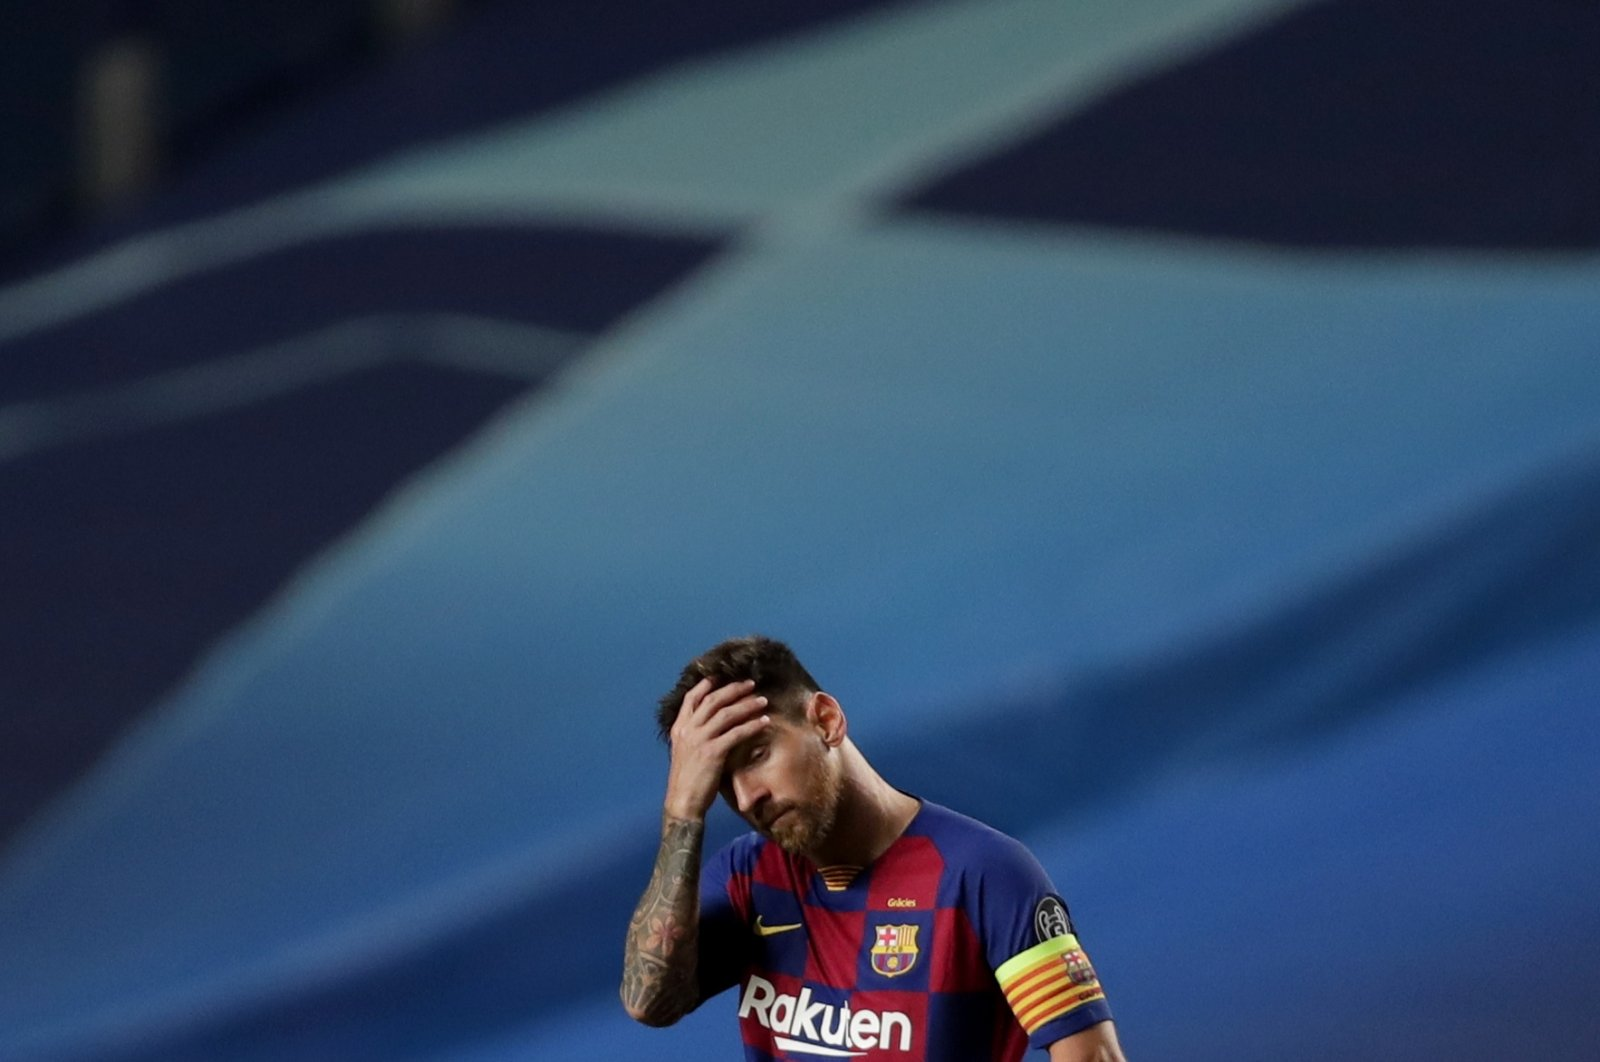 Barcelona's Lionel Messi reacts during the UEFA Champions League quarterfinal match against Bayern Munich in Lisbon, Portugal, Aug. 14, 2020. (EPA Photo)